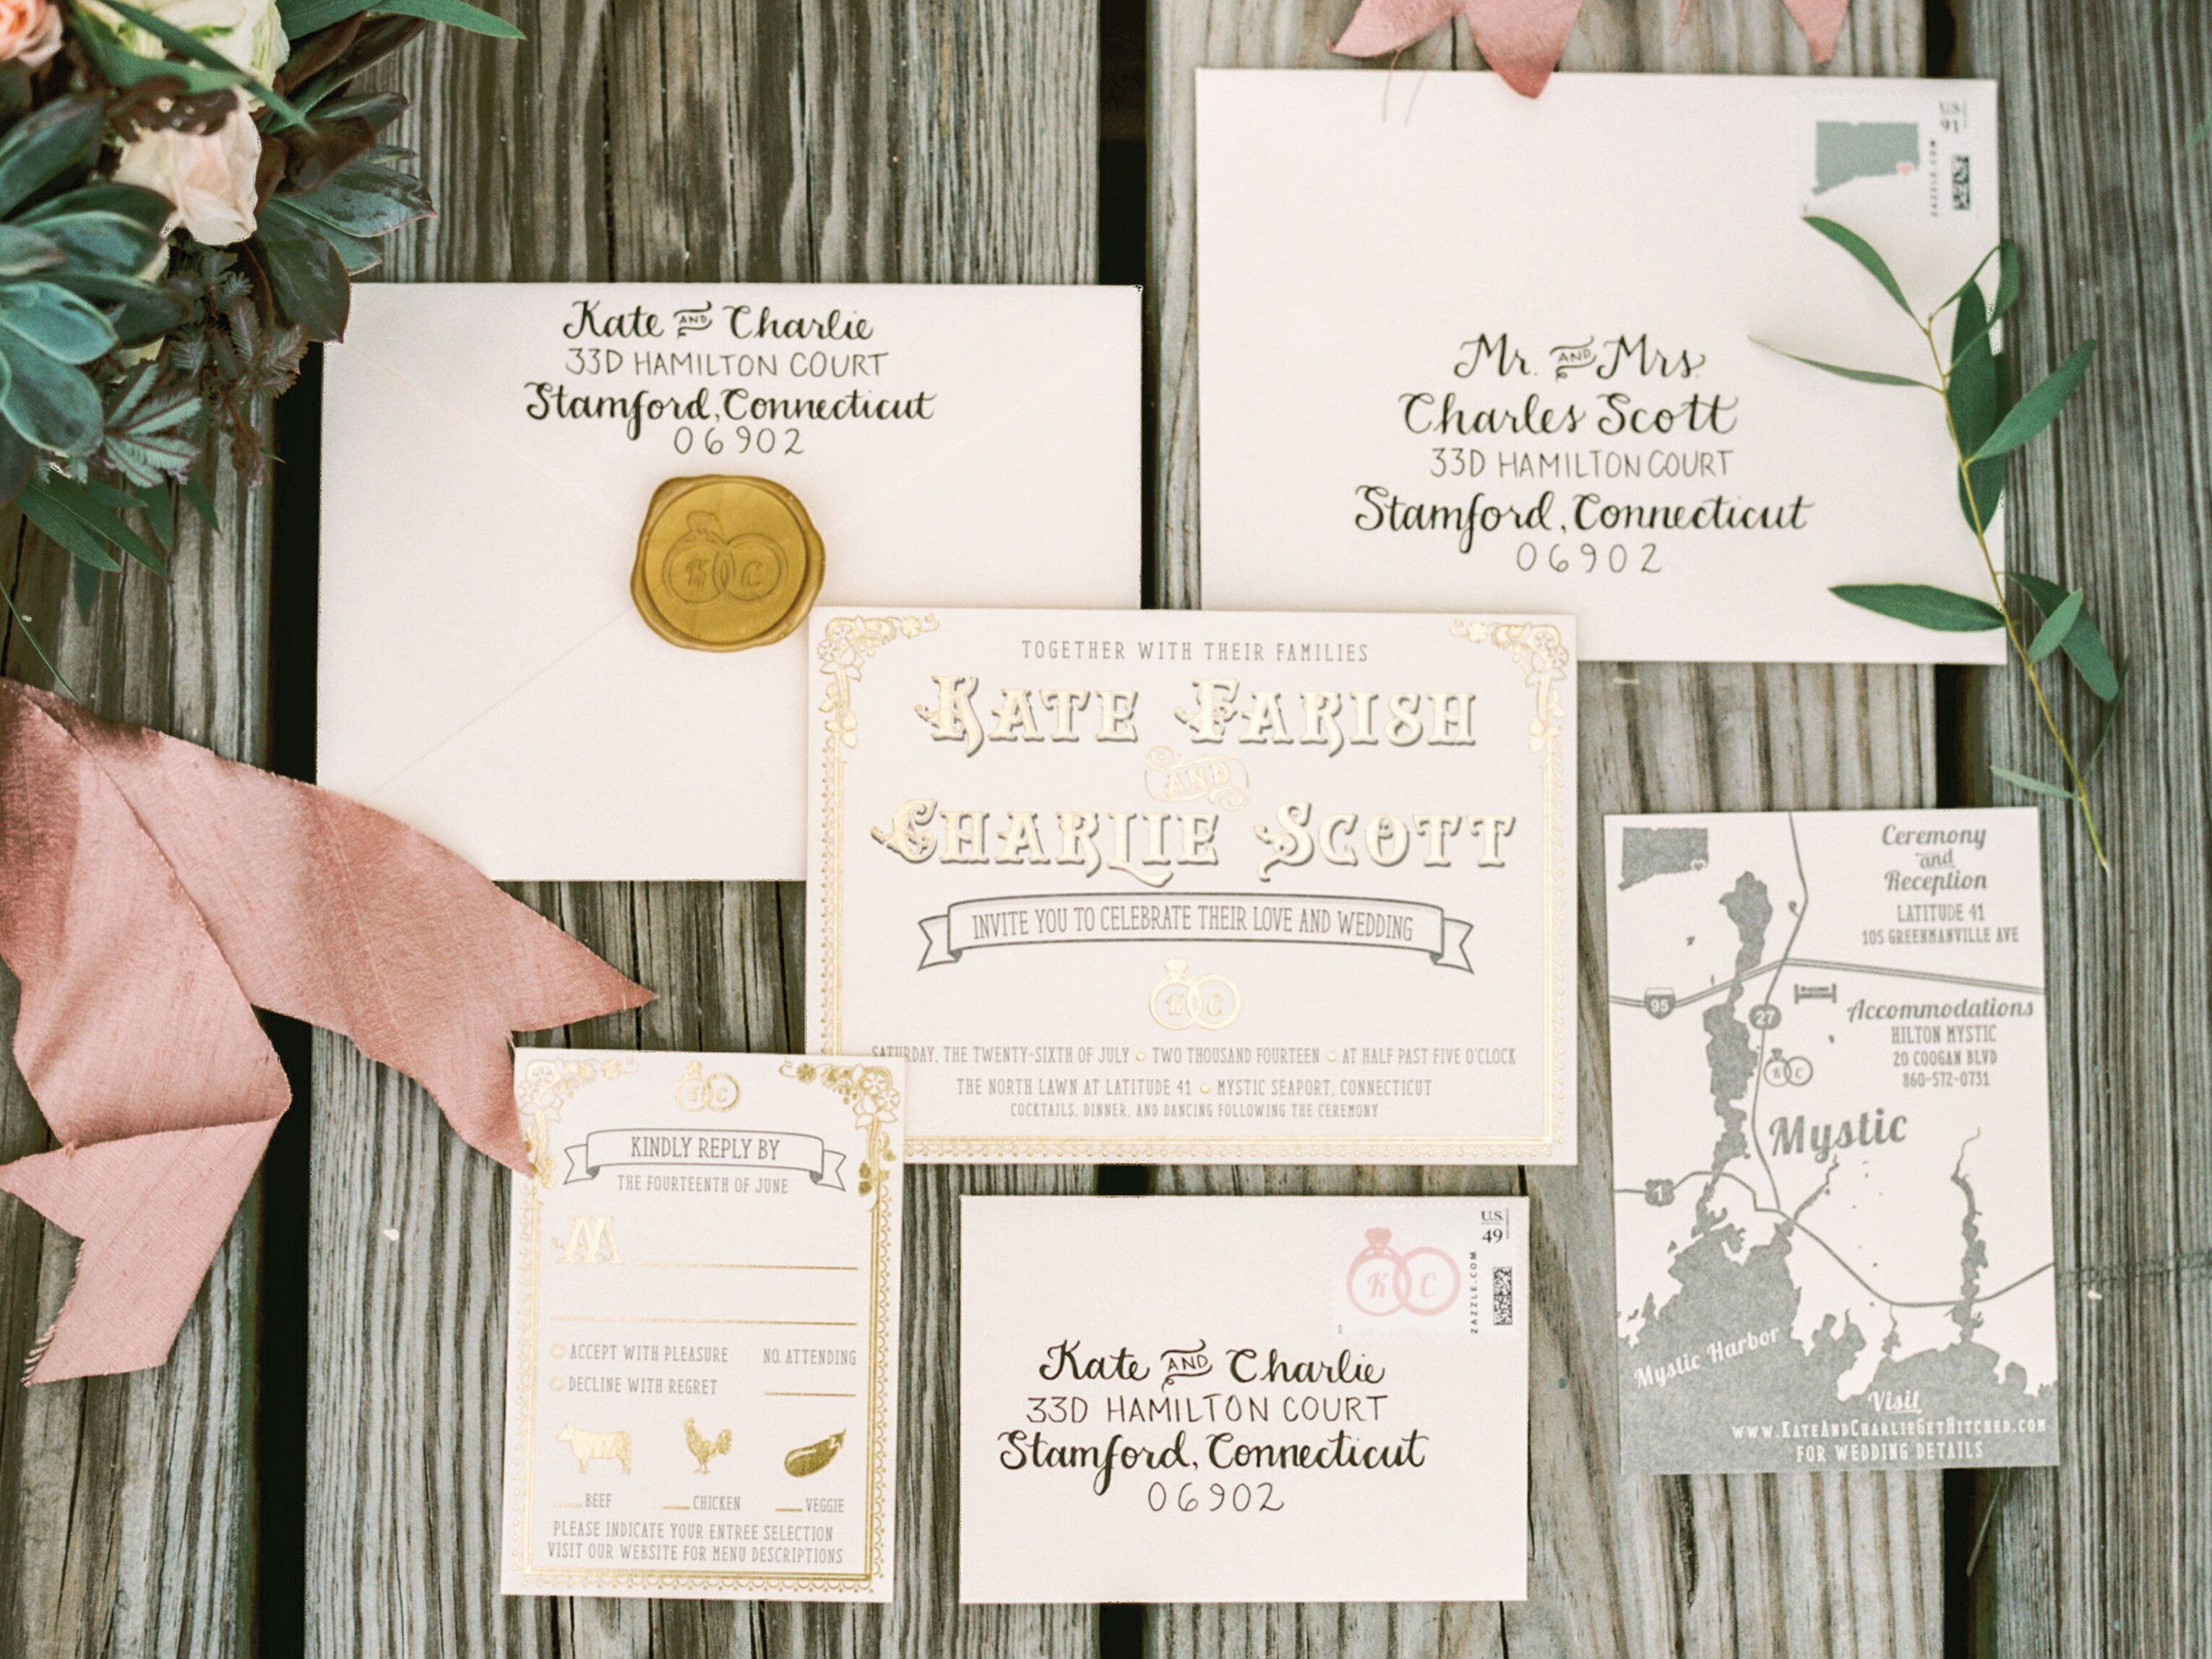 Wedding Invitation Verses Everything You Need To Know: Wedding Invitations: A Complete Checklist